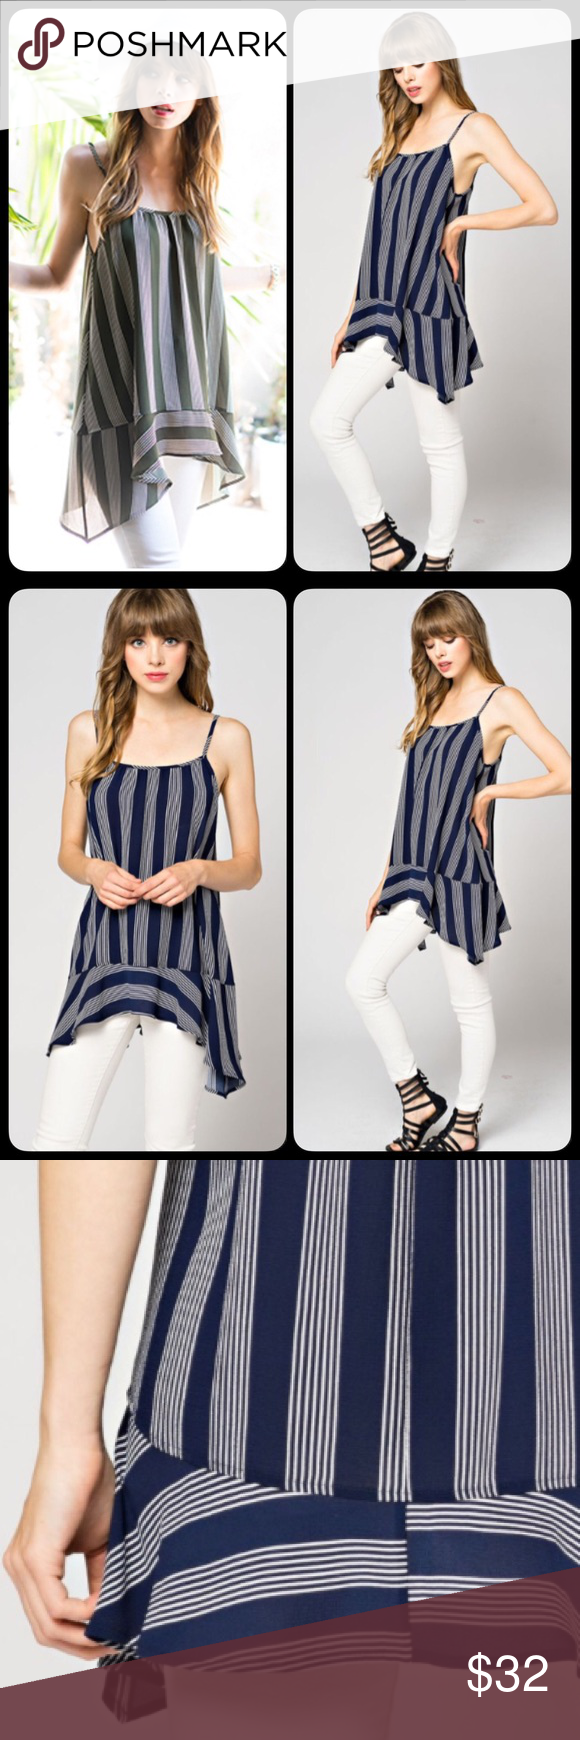 Striped Peplum Sharkbite Asymmetrical Tank Blouse Beautiful tunic tank in a striped print and shark bite asymmetrical hemline. So adorable and perfect for the summer! S M L. Only blue available. Runs true to woman's sizing S4-6 M8-10 L12-14 Tops Blouses